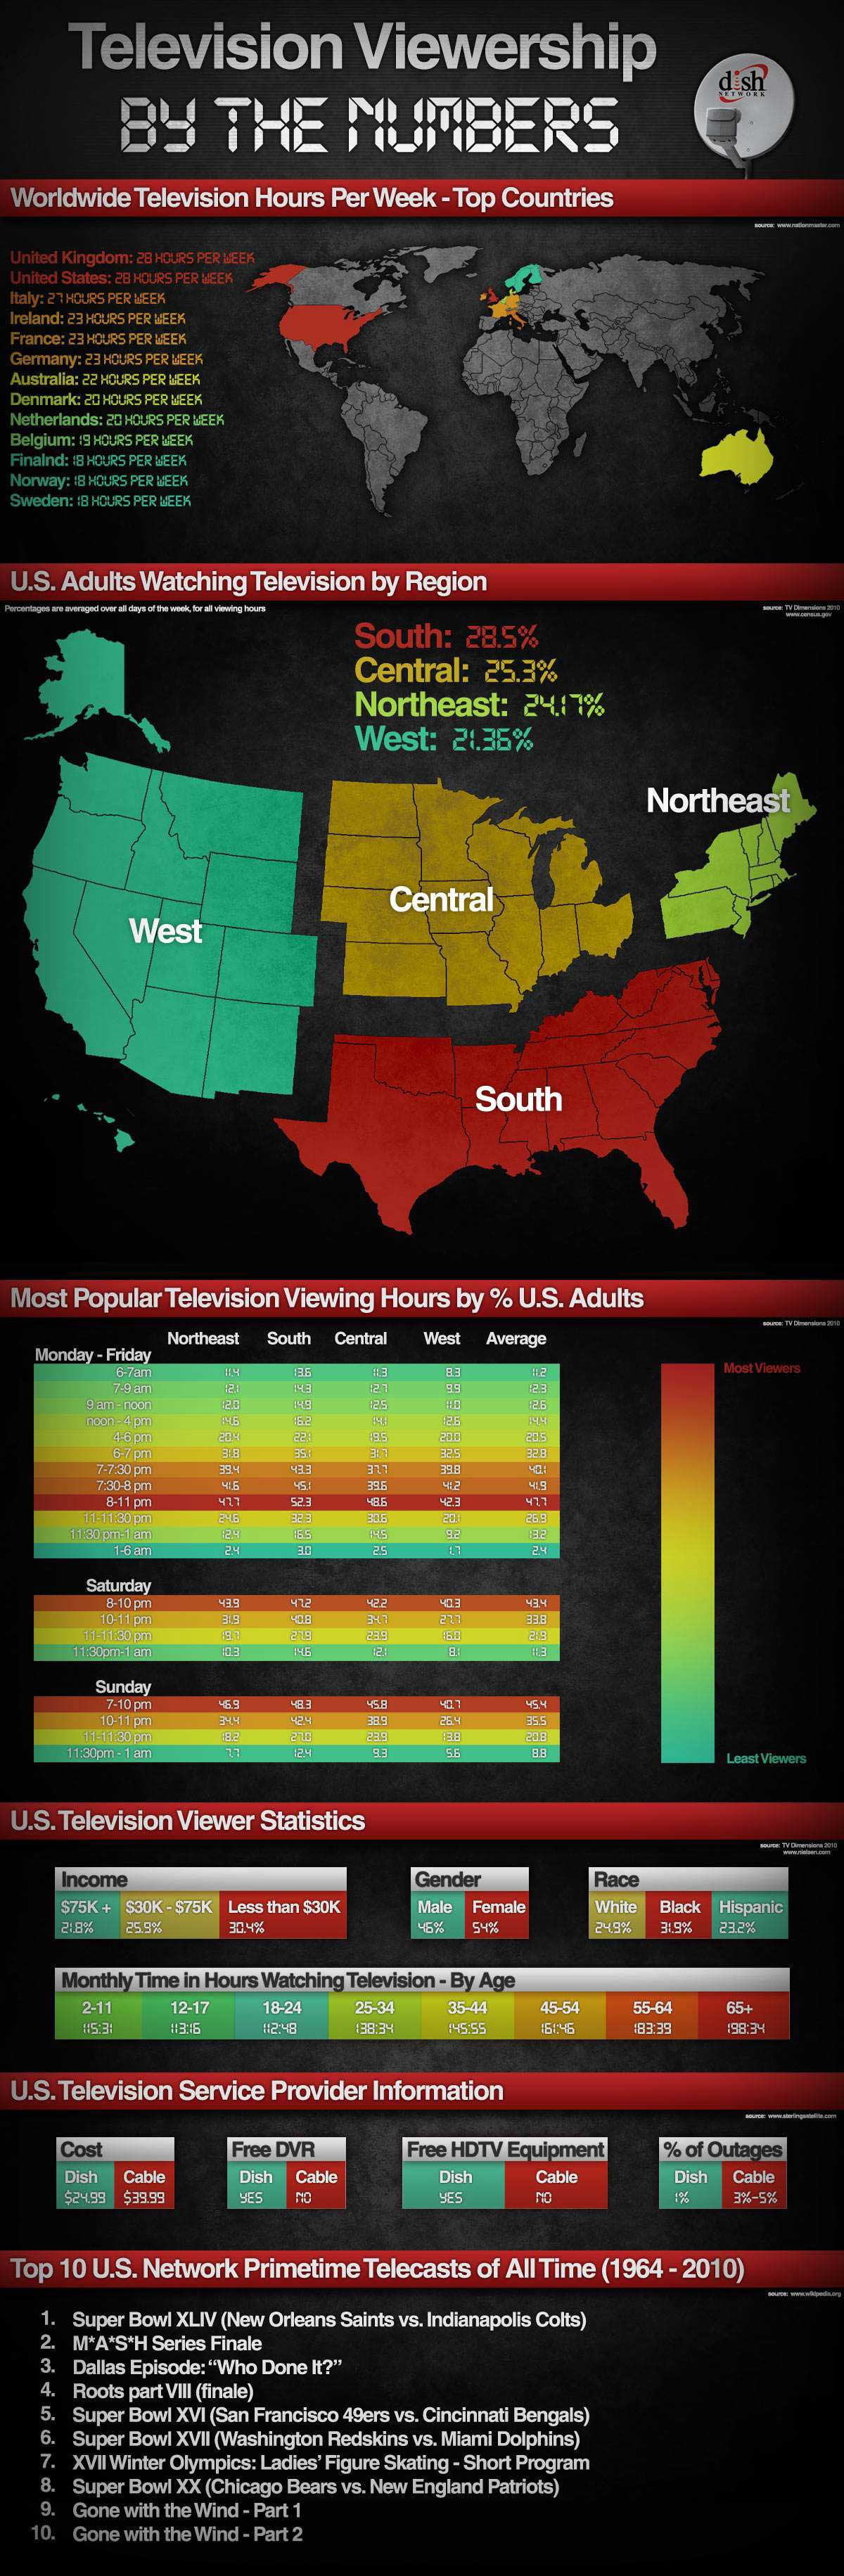 Television Viewership By The Numbers